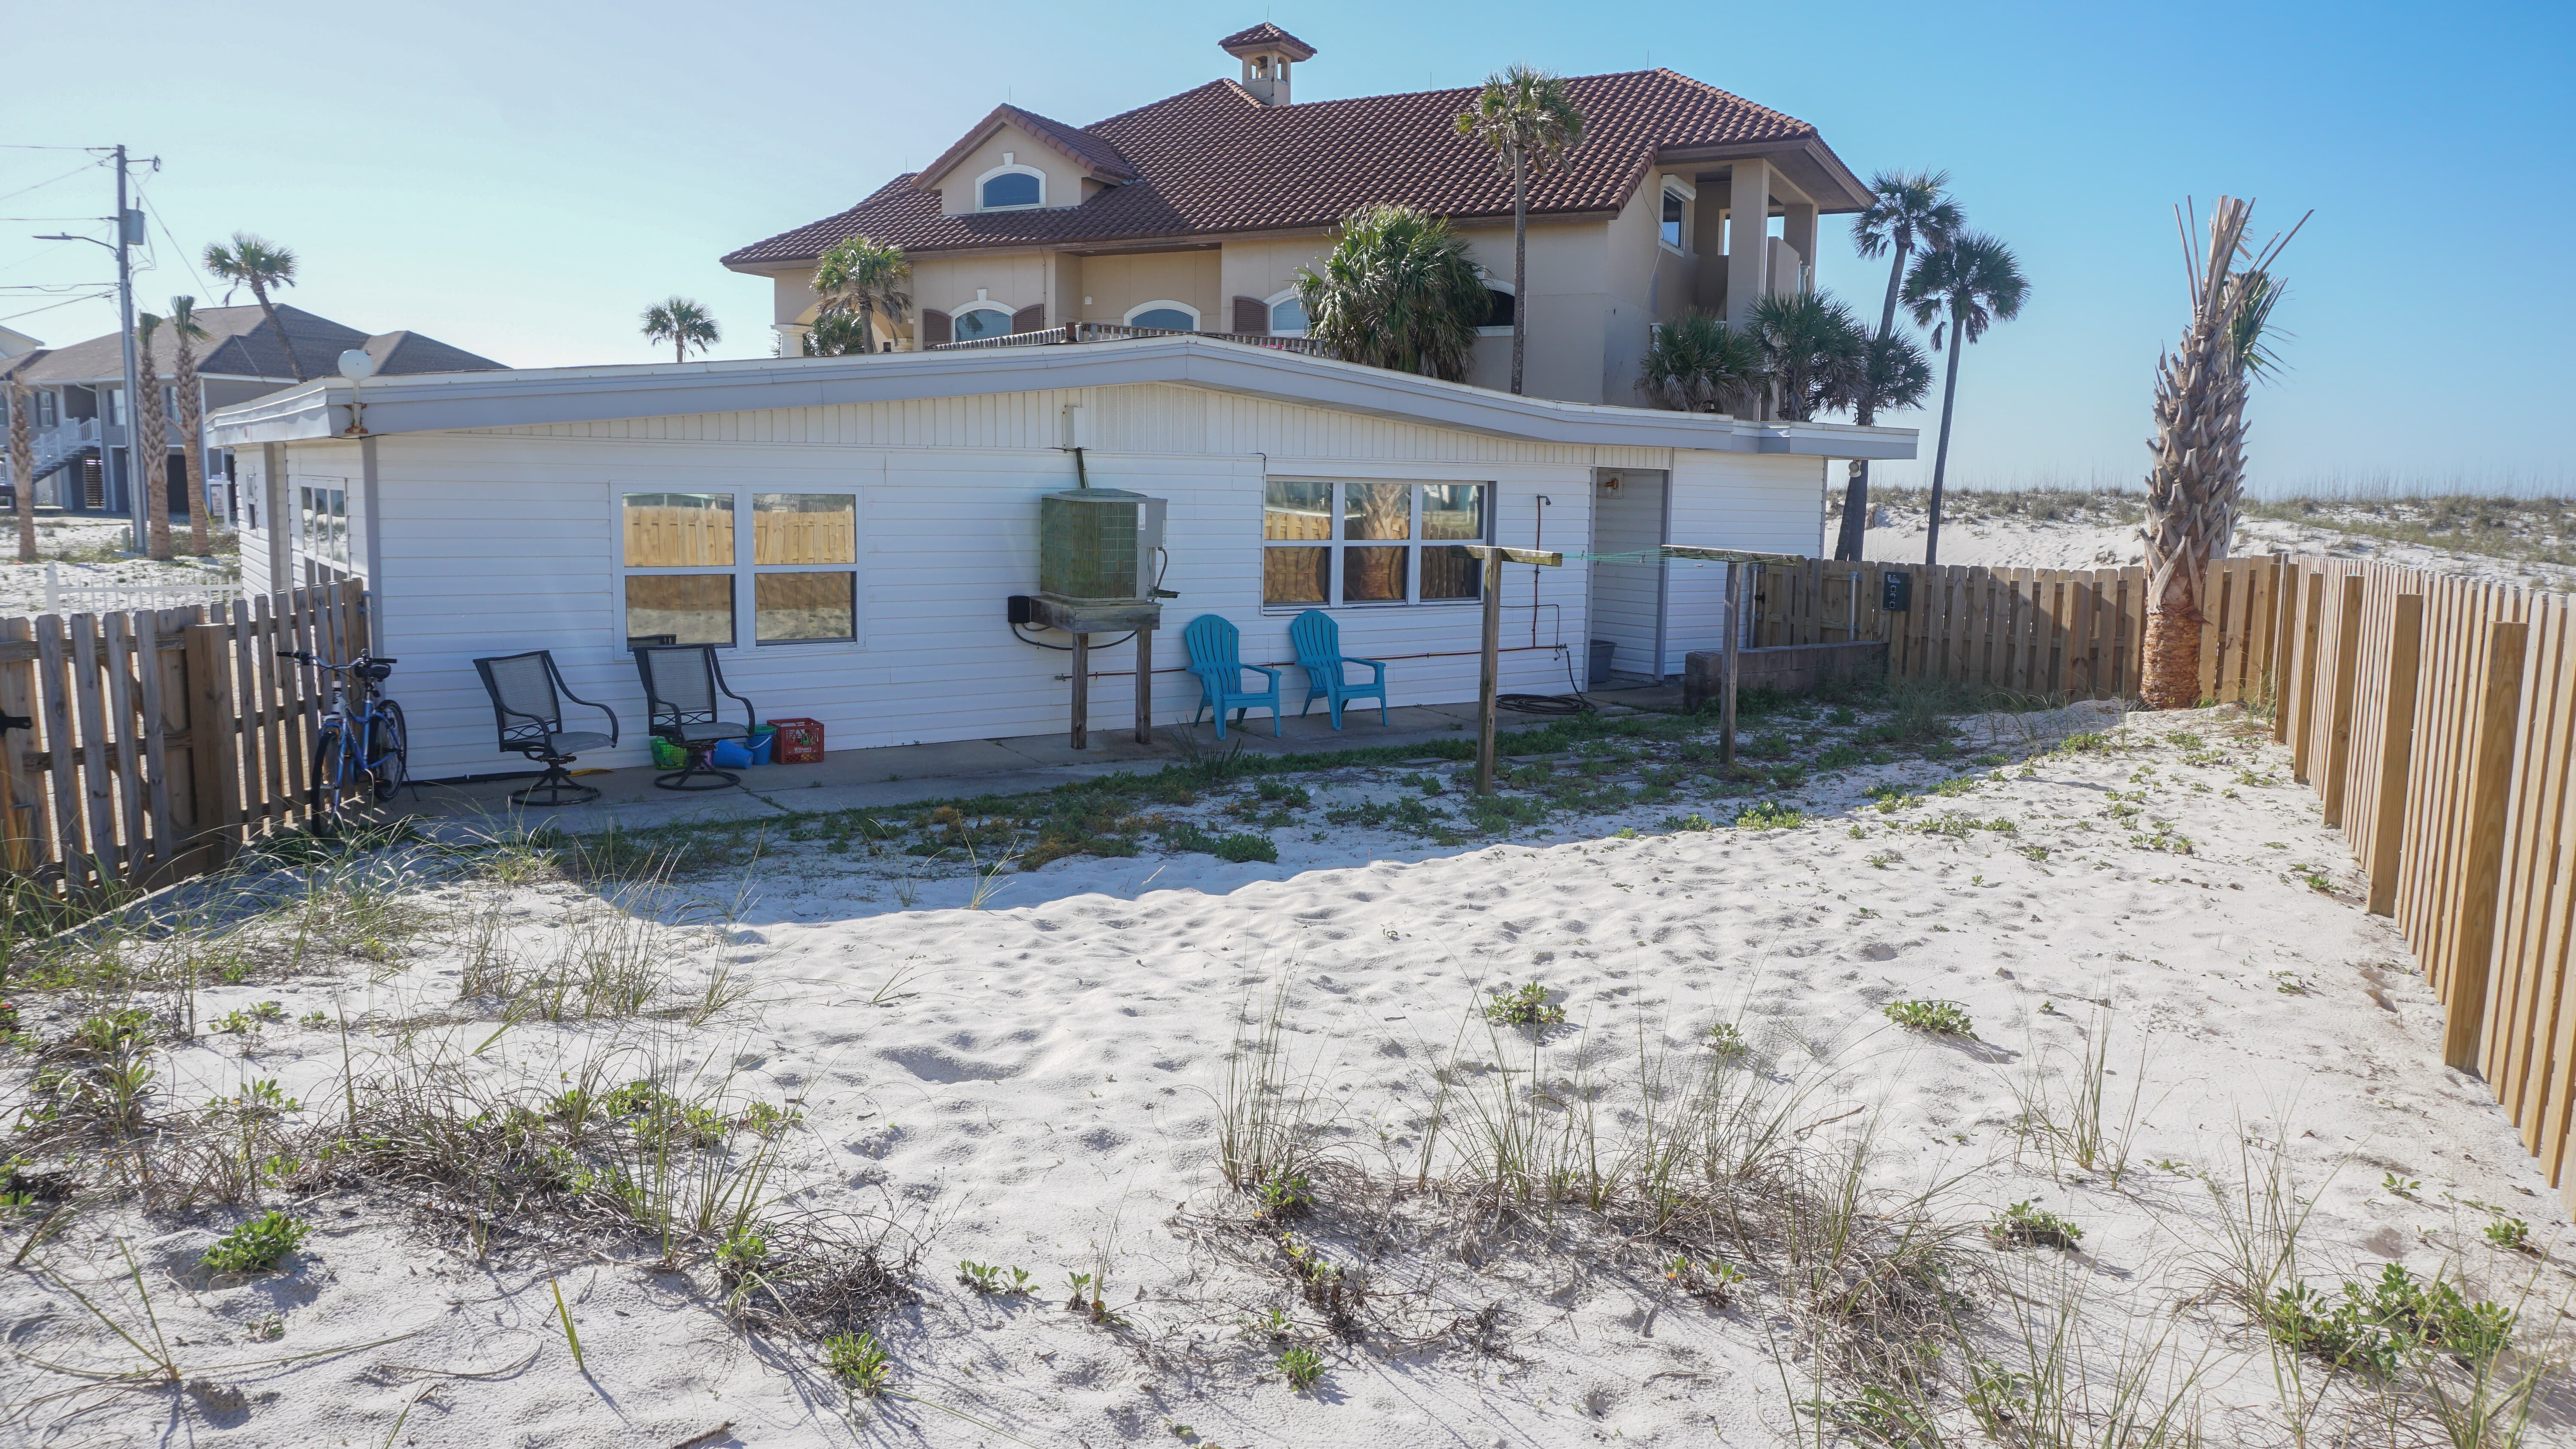 Avenida 14 - 402 House / Cottage rental in Pensacola Beach House Rentals in Pensacola Beach Florida - #3